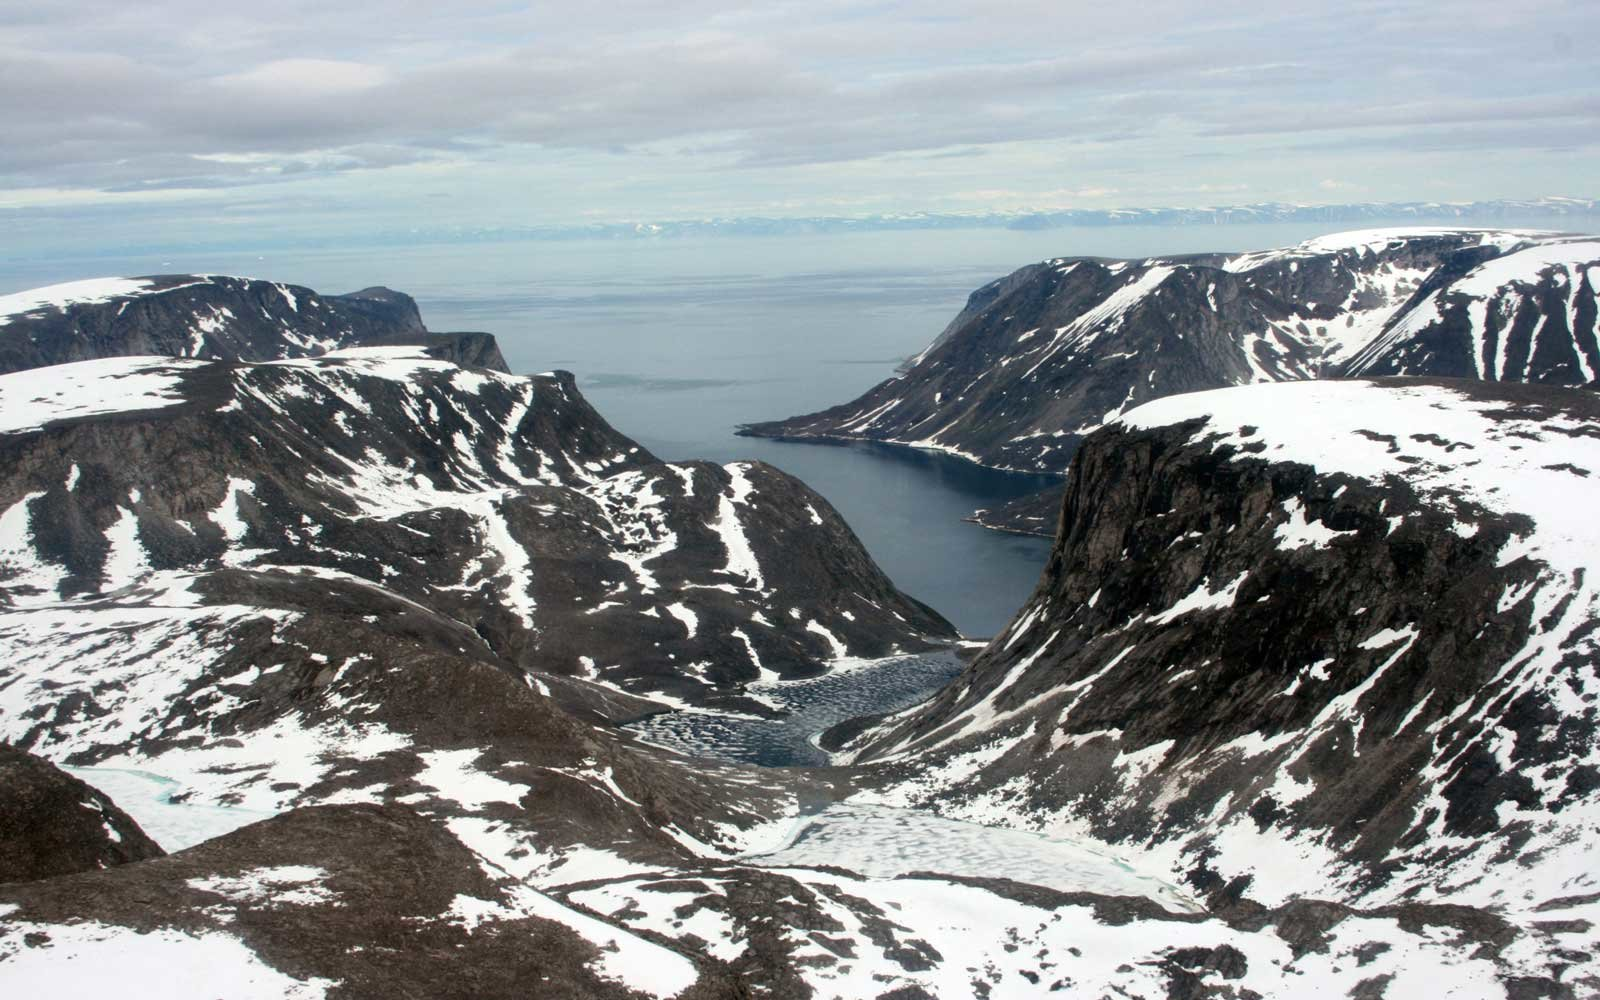 A view of Baffin Island in Canada.